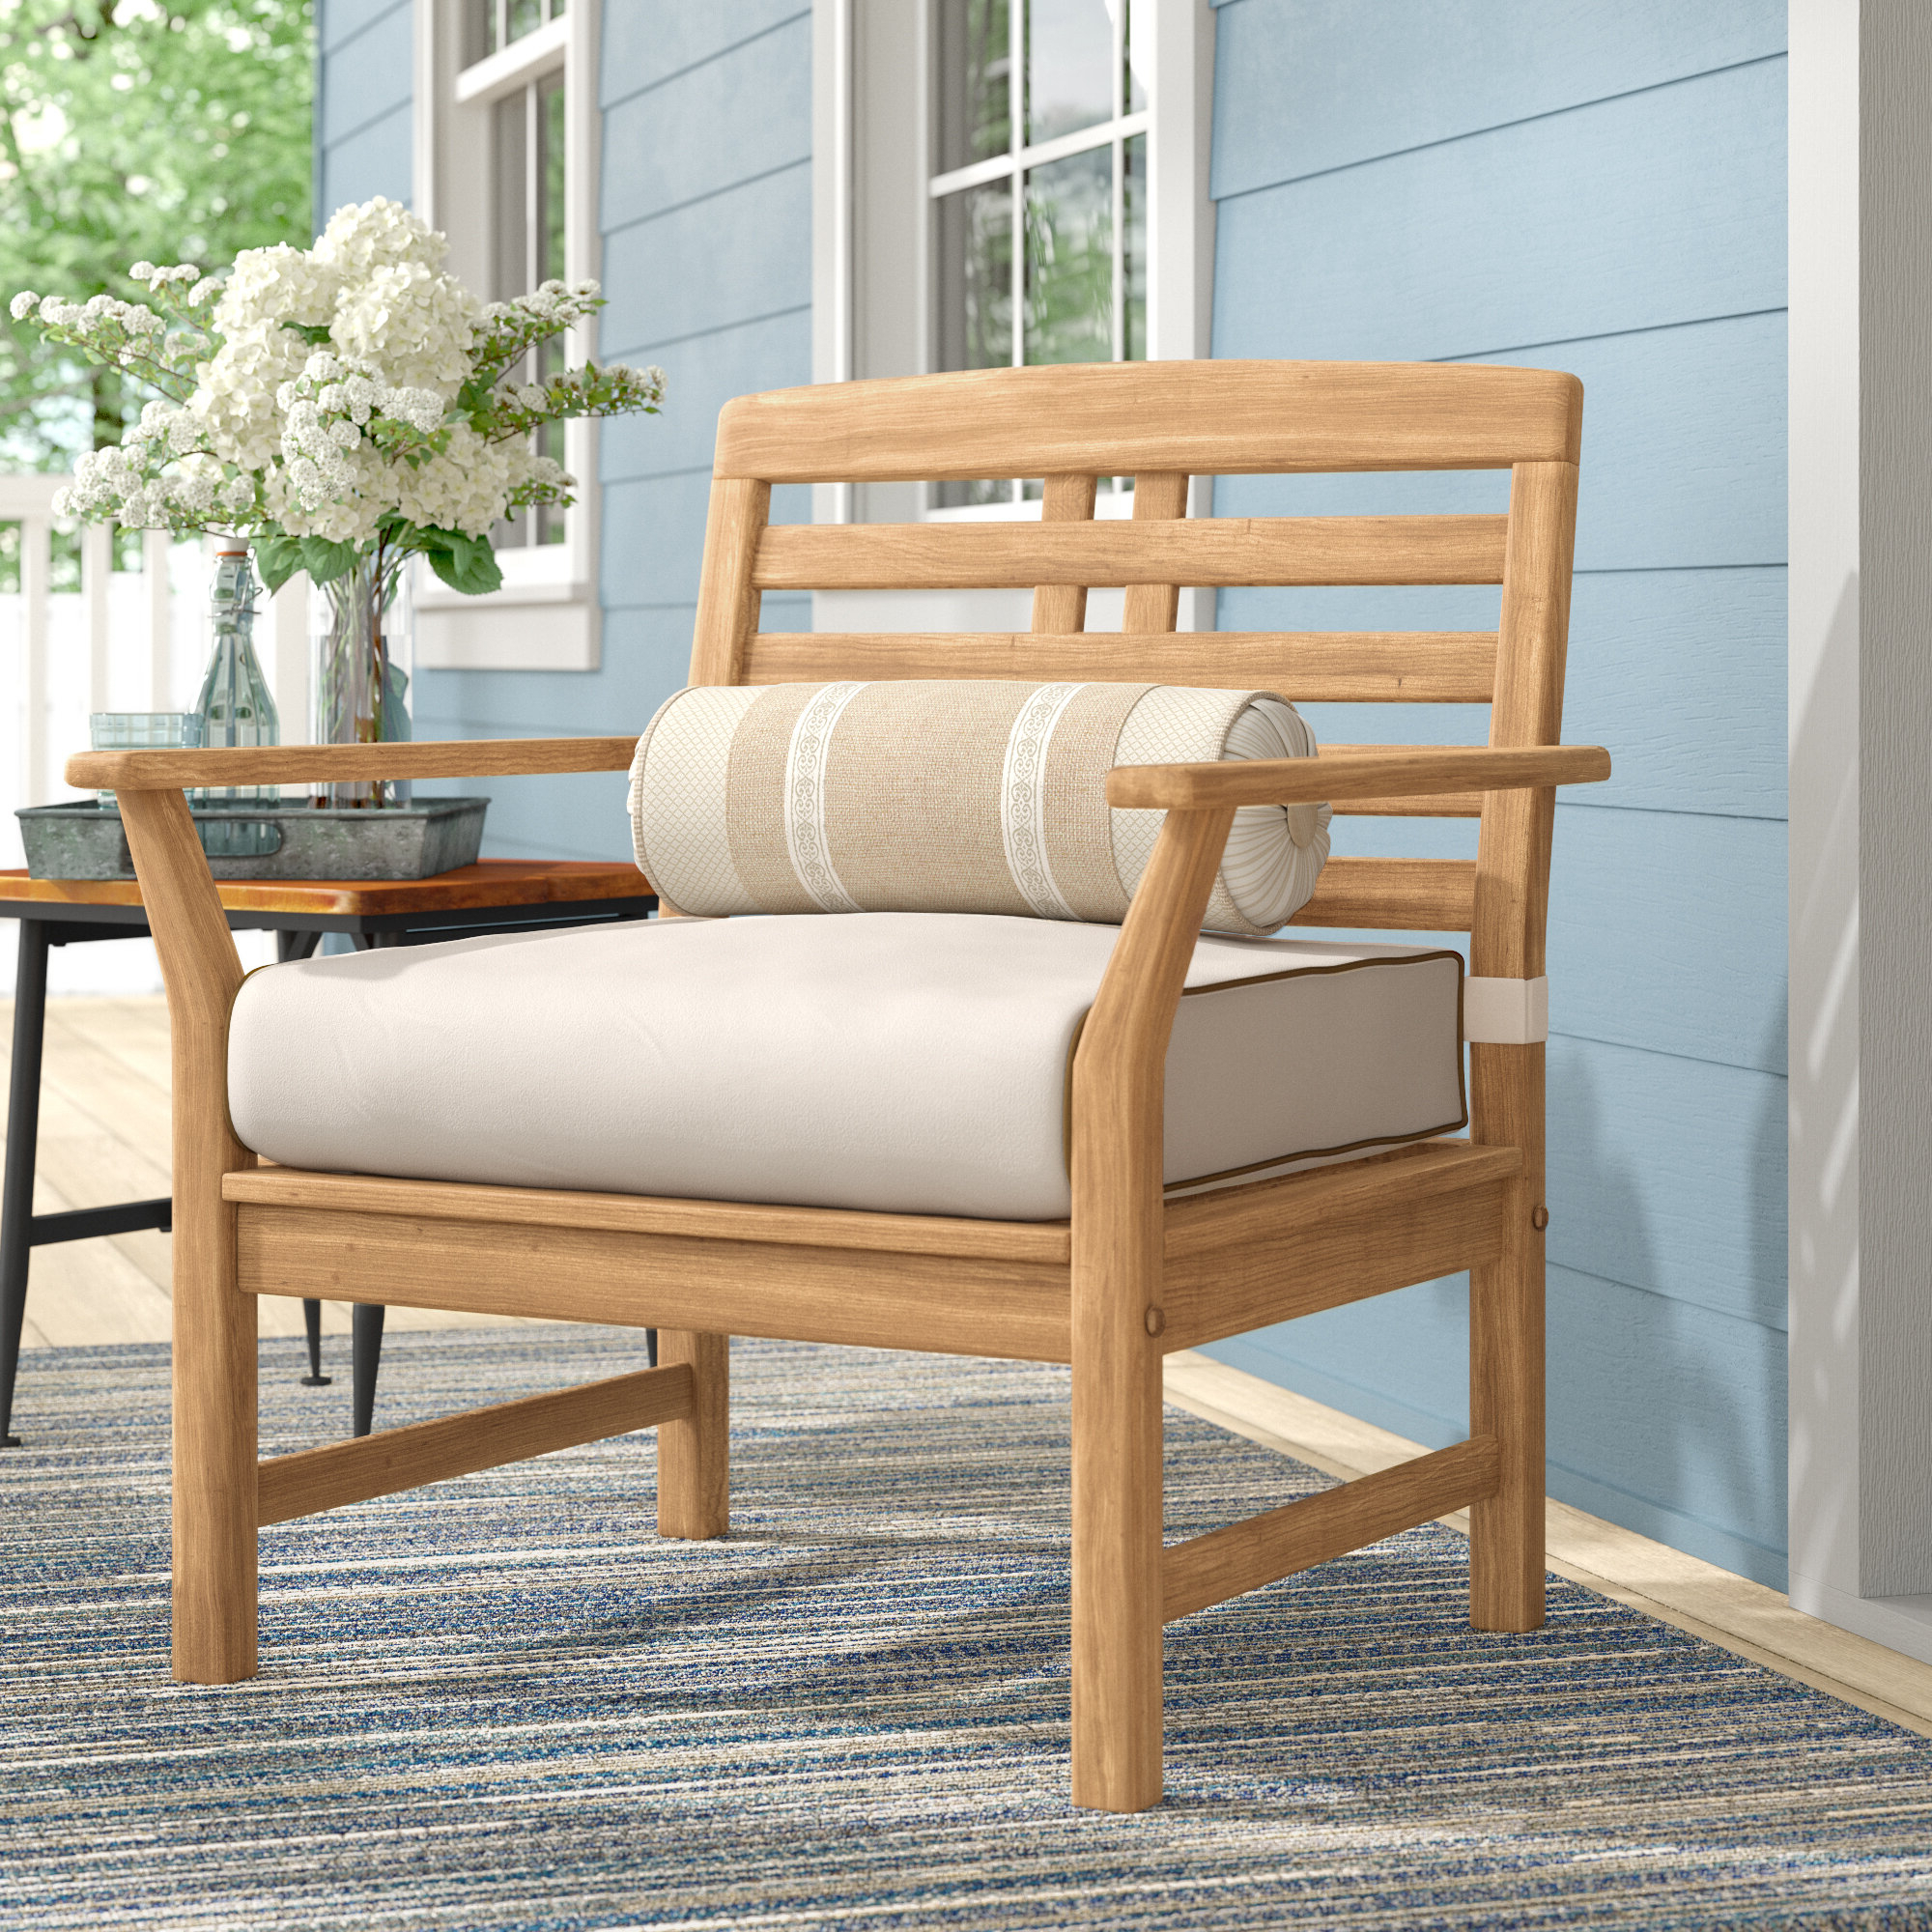 Preferred Calila Teak Loveseats With Cushion For Calila Teak Patio Chair With Cushions (View 7 of 20)